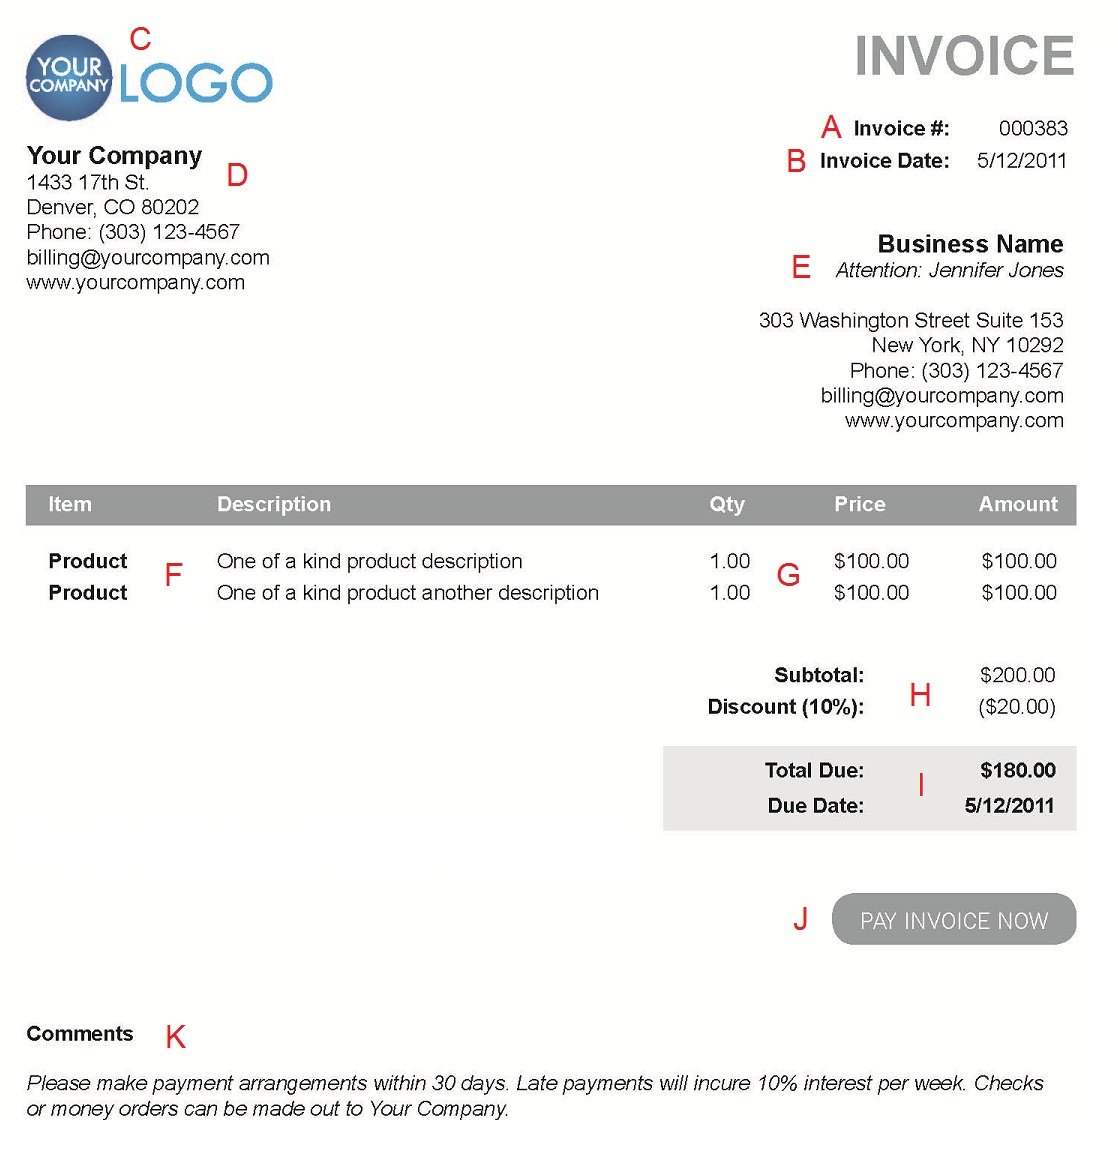 Atvingus  Scenic The  Different Sections Of An Electronic Payment Invoice With Great A  With Divine Email Template For Invoice Also Hmrc Vat Invoice In Addition Mobile Invoicing Solutions And Commision Invoice As Well As Cis Invoice Template Additionally Carbon Invoice From Paysimplecom With Atvingus  Great The  Different Sections Of An Electronic Payment Invoice With Divine A  And Scenic Email Template For Invoice Also Hmrc Vat Invoice In Addition Mobile Invoicing Solutions From Paysimplecom